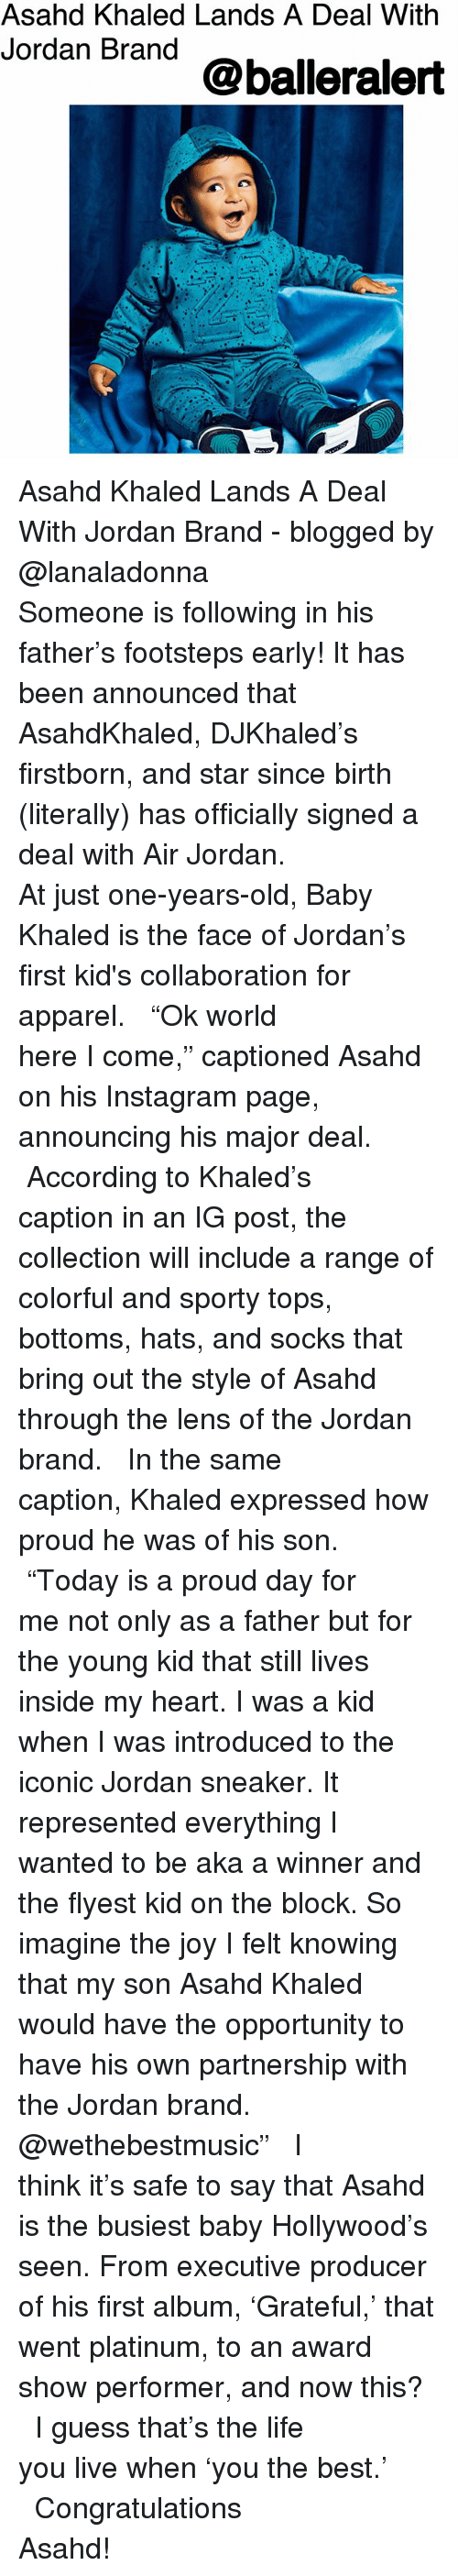 "Air Jordan, Instagram, and Life: Asahd Khaled Lands A Deal With  Jordan Brand  @balleralert Asahd Khaled Lands A Deal With Jordan Brand - blogged by @lanaladonna ⠀⠀⠀⠀⠀⠀⠀ ⠀⠀⠀⠀⠀⠀⠀ Someone is following in his father's footsteps early! It has been announced that AsahdKhaled, DJKhaled's firstborn, and star since birth (literally) has officially signed a deal with Air Jordan. ⠀⠀⠀⠀⠀⠀⠀ ⠀⠀⠀⠀⠀⠀⠀ At just one-years-old, Baby Khaled is the face of Jordan's first kid's collaboration for apparel. ⠀⠀⠀⠀⠀⠀⠀ ⠀⠀⠀⠀⠀⠀⠀ ""Ok world here I come,"" captioned Asahd on his Instagram page, announcing his major deal. ⠀⠀⠀⠀⠀⠀⠀ ⠀⠀⠀⠀⠀⠀⠀ According to Khaled's caption in an IG post, the collection will include a range of colorful and sporty tops, bottoms, hats, and socks that bring out the style of Asahd through the lens of the Jordan brand. ⠀⠀⠀⠀⠀⠀⠀ ⠀⠀⠀⠀⠀⠀⠀ In the same caption, Khaled expressed how proud he was of his son. ⠀⠀⠀⠀⠀⠀⠀ ⠀⠀⠀⠀⠀⠀⠀ ""Today is a proud day for me not only as a father but for the young kid that still lives inside my heart. I was a kid when I was introduced to the iconic Jordan sneaker. It represented everything I wanted to be aka a winner and the flyest kid on the block. So imagine the joy I felt knowing that my son Asahd Khaled would have the opportunity to have his own partnership with the Jordan brand. @wethebestmusic"" ⠀⠀⠀⠀⠀⠀⠀ ⠀⠀⠀⠀⠀⠀⠀ I think it's safe to say that Asahd is the busiest baby Hollywood's seen. From executive producer of his first album, 'Grateful,' that went platinum, to an award show performer, and now this? ⠀⠀⠀⠀⠀⠀⠀ ⠀⠀⠀⠀⠀⠀⠀ I guess that's the life you live when 'you the best.' ⠀⠀⠀⠀⠀⠀⠀ ⠀⠀⠀⠀⠀⠀⠀ Congratulations Asahd!"